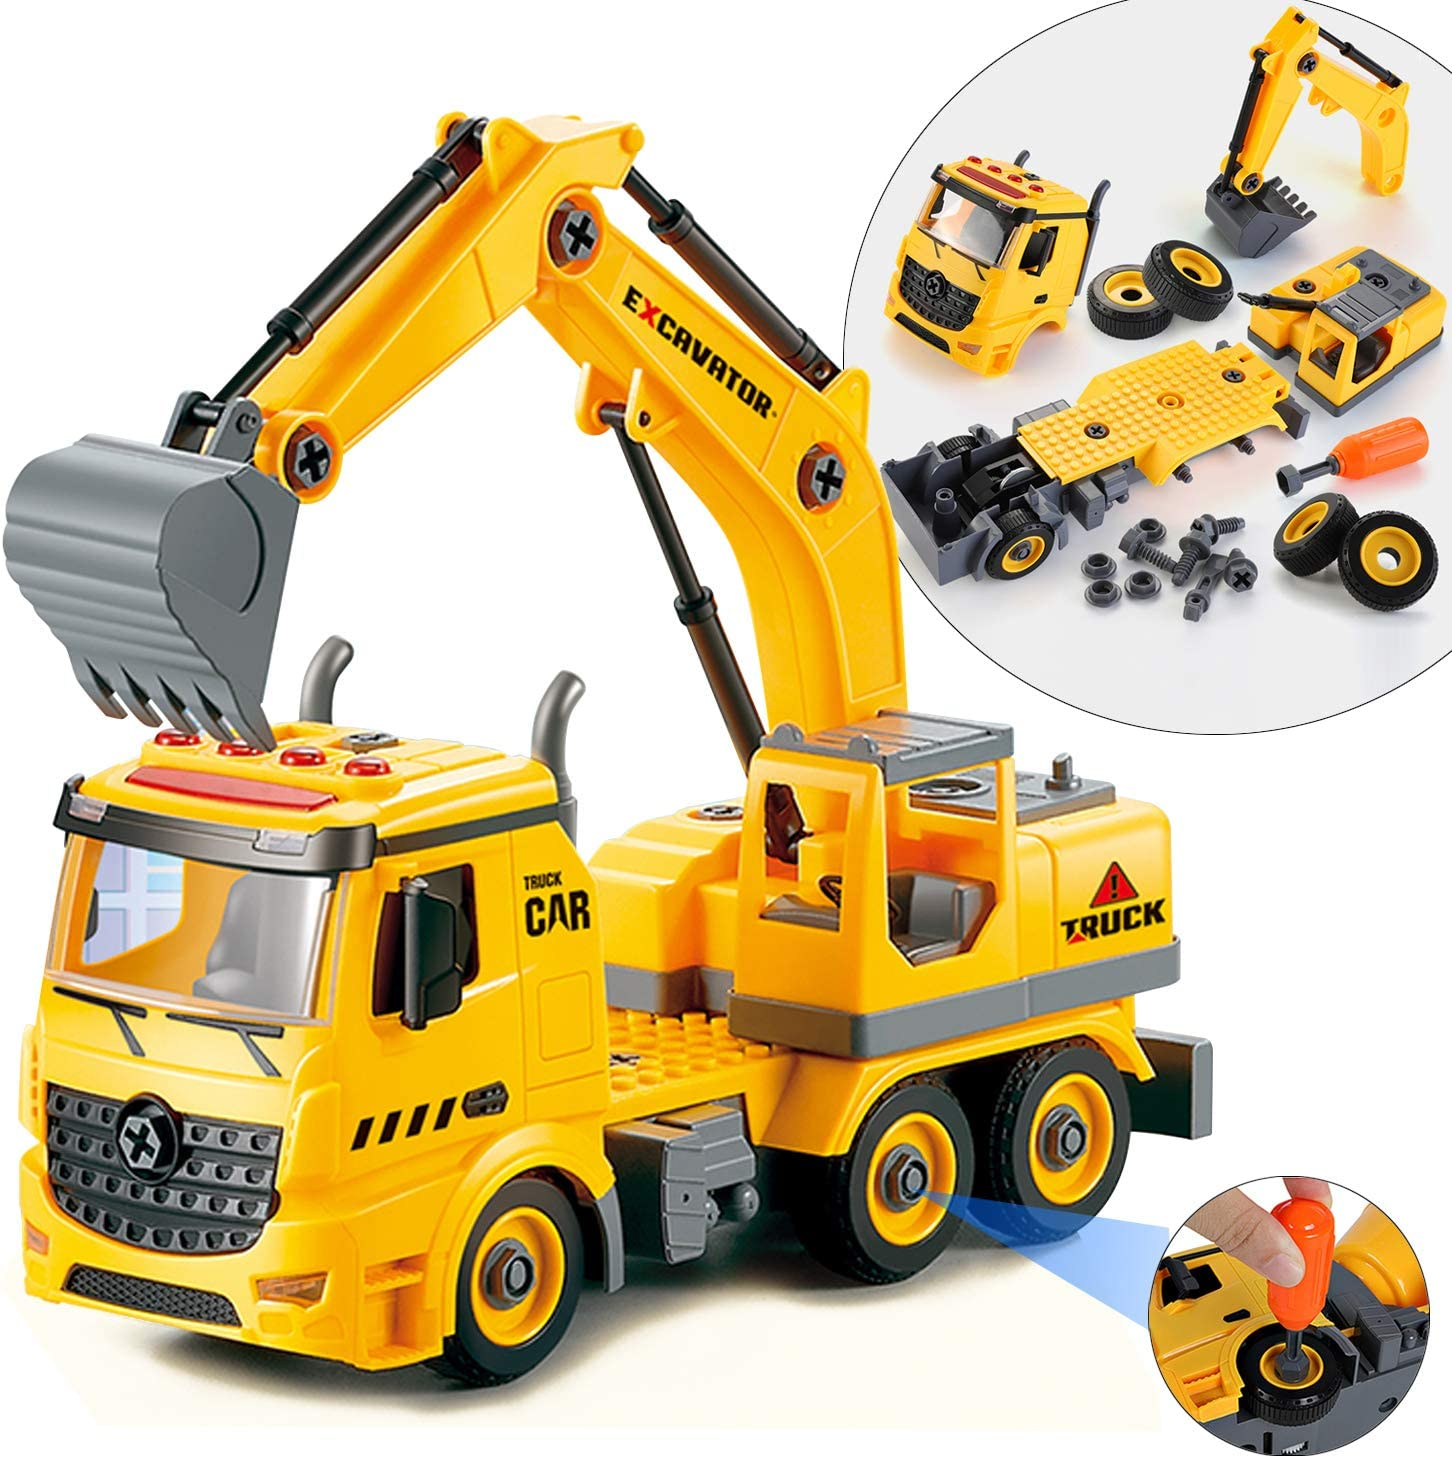 MARUMINE Take Apart Toys Vehicle 74PCS Construction Truck Play Max Free shipping on posting reviews 61% OFF